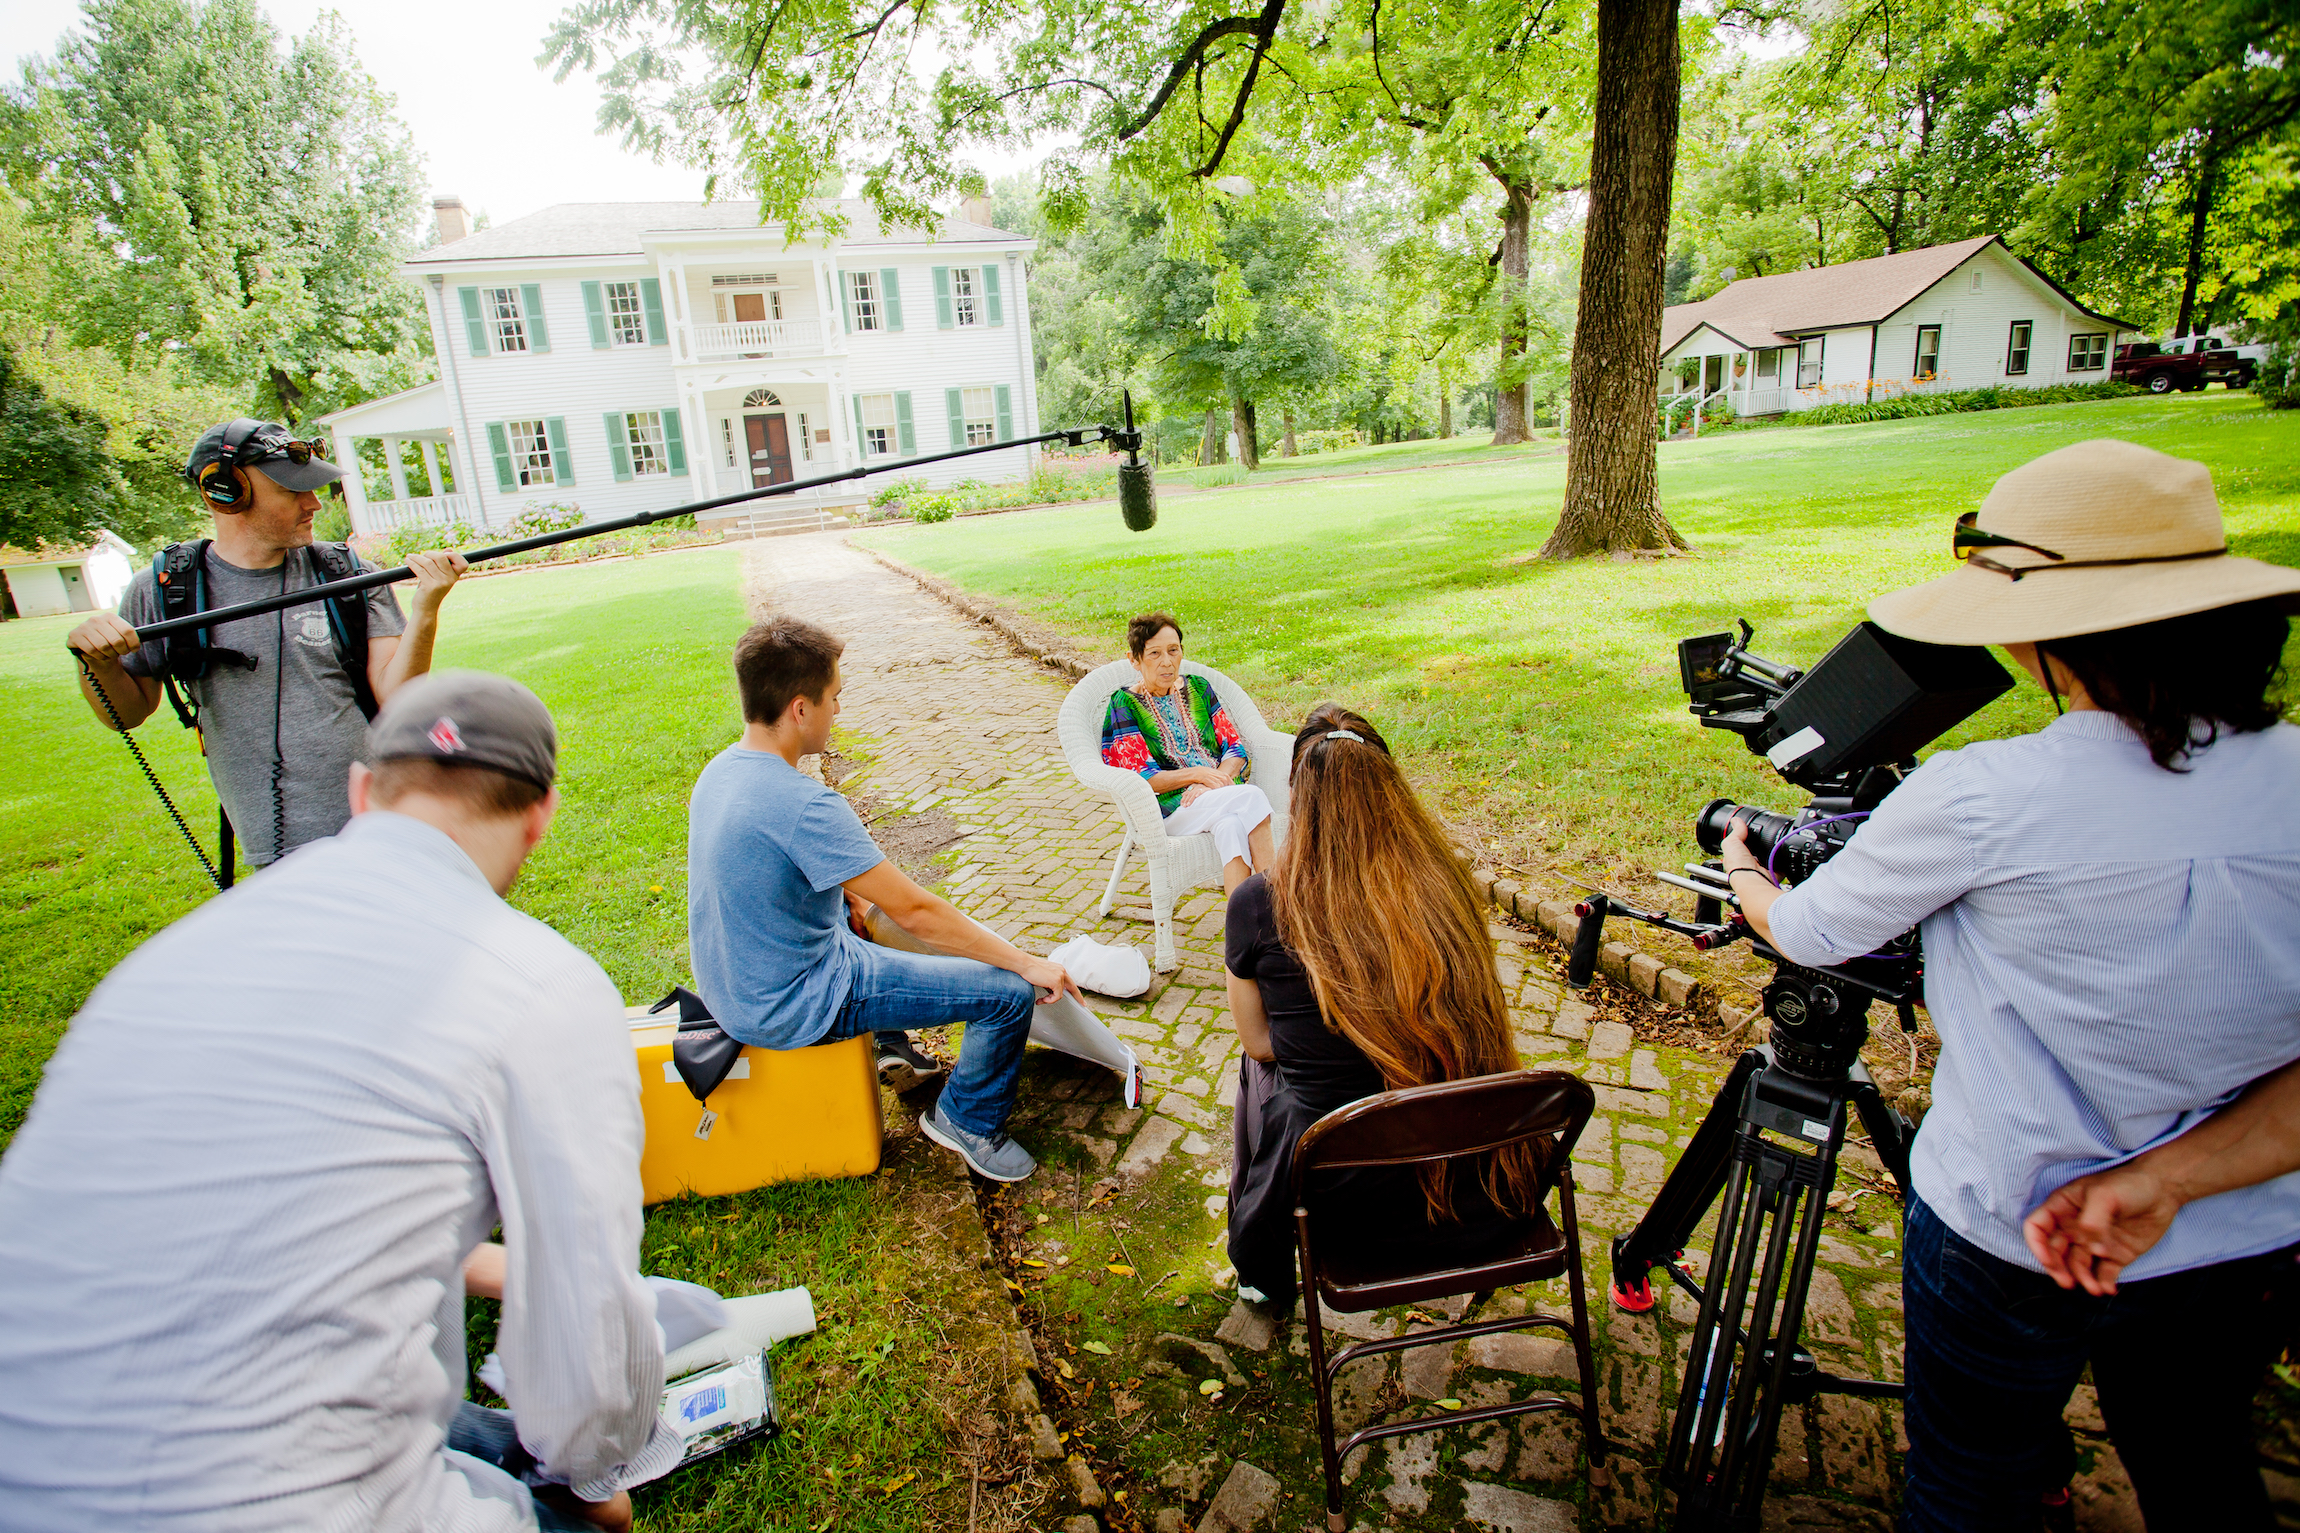 On location at the Murrell Home in Oklahoma, the Mankiller Documentary crew interviews Virginia Carey, a Cherokee elder